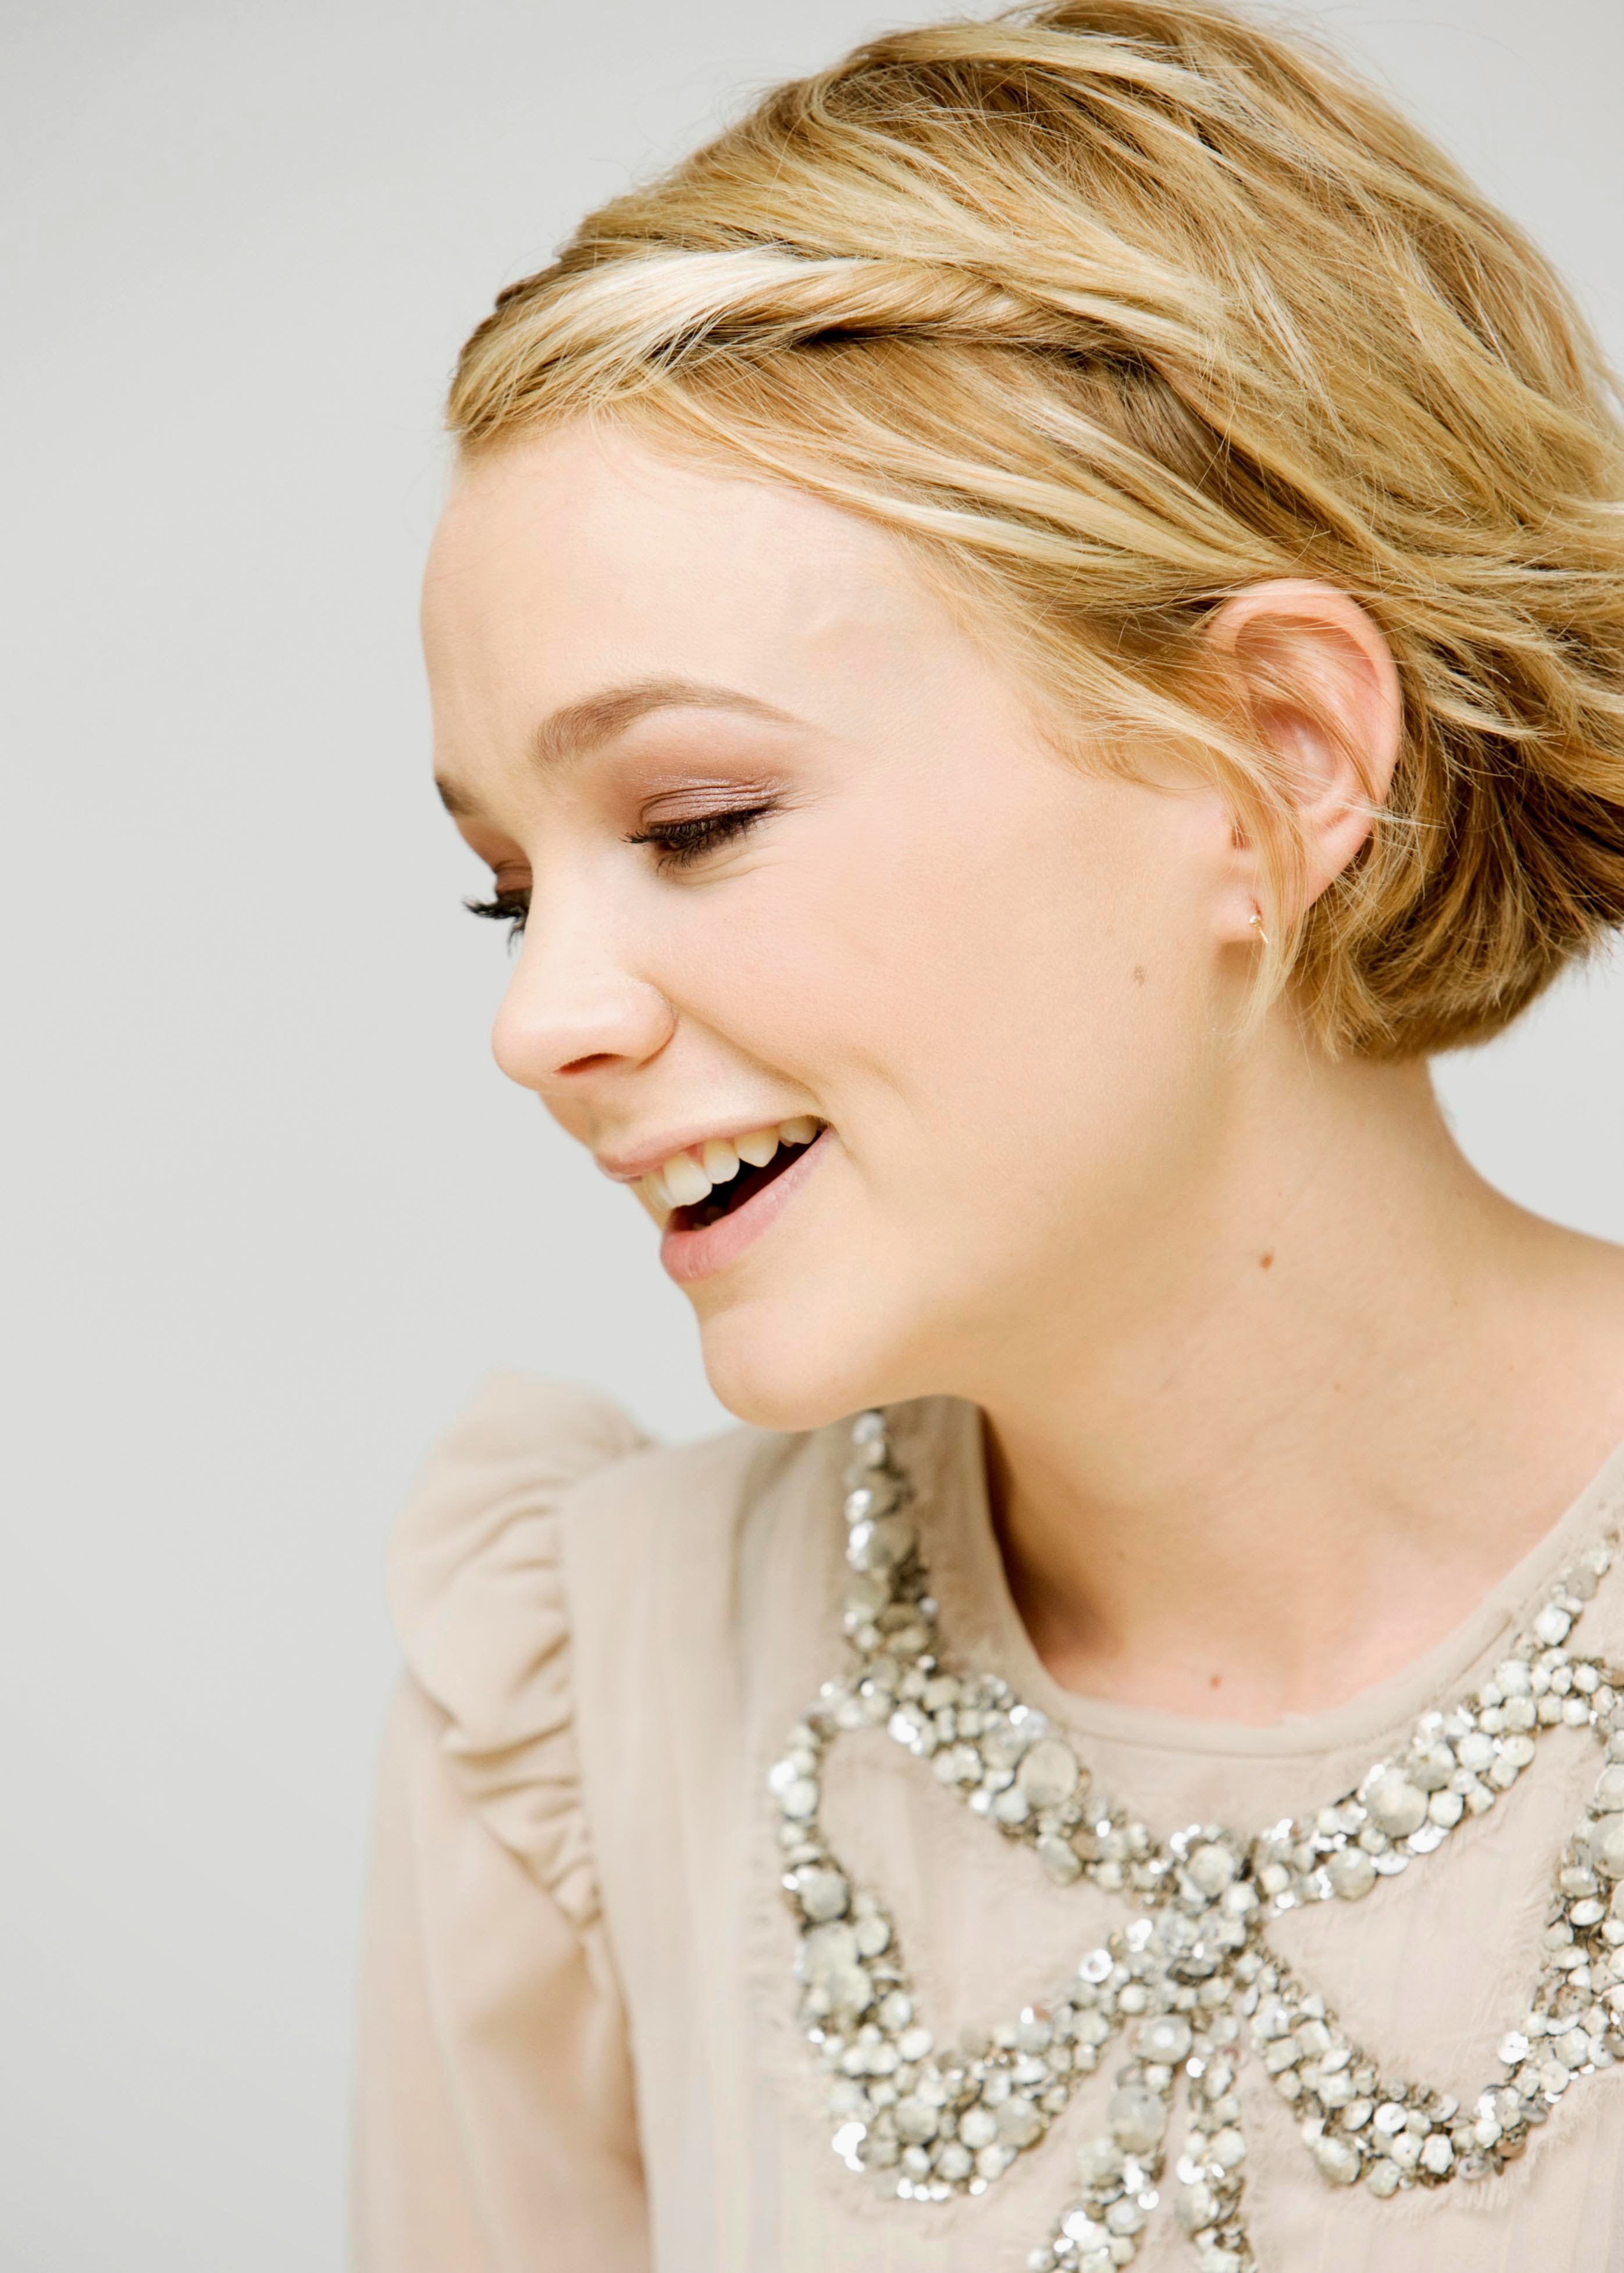 carey-mulligan-0264.jpg